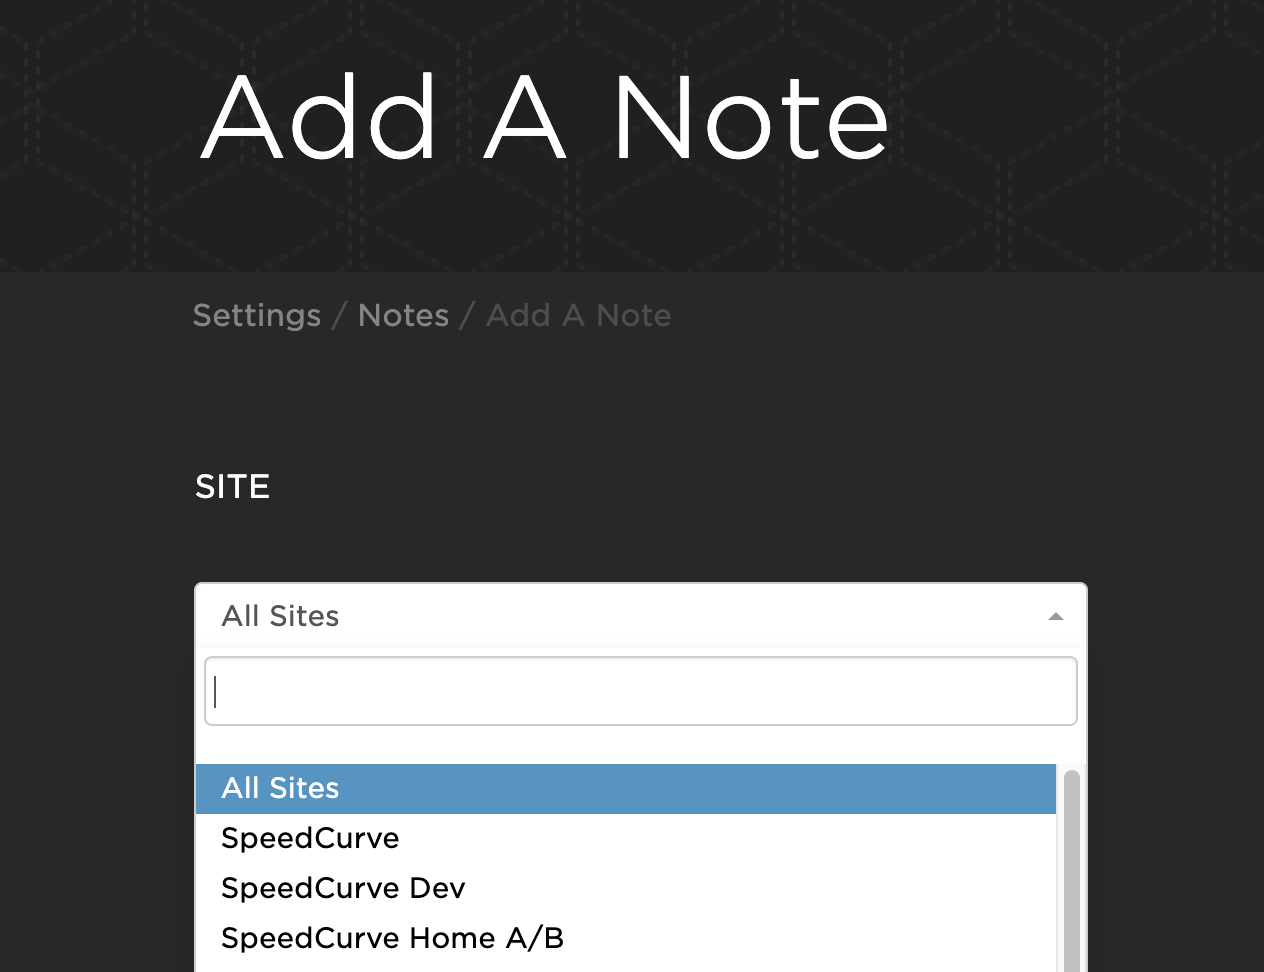 Specifying the site a note is for